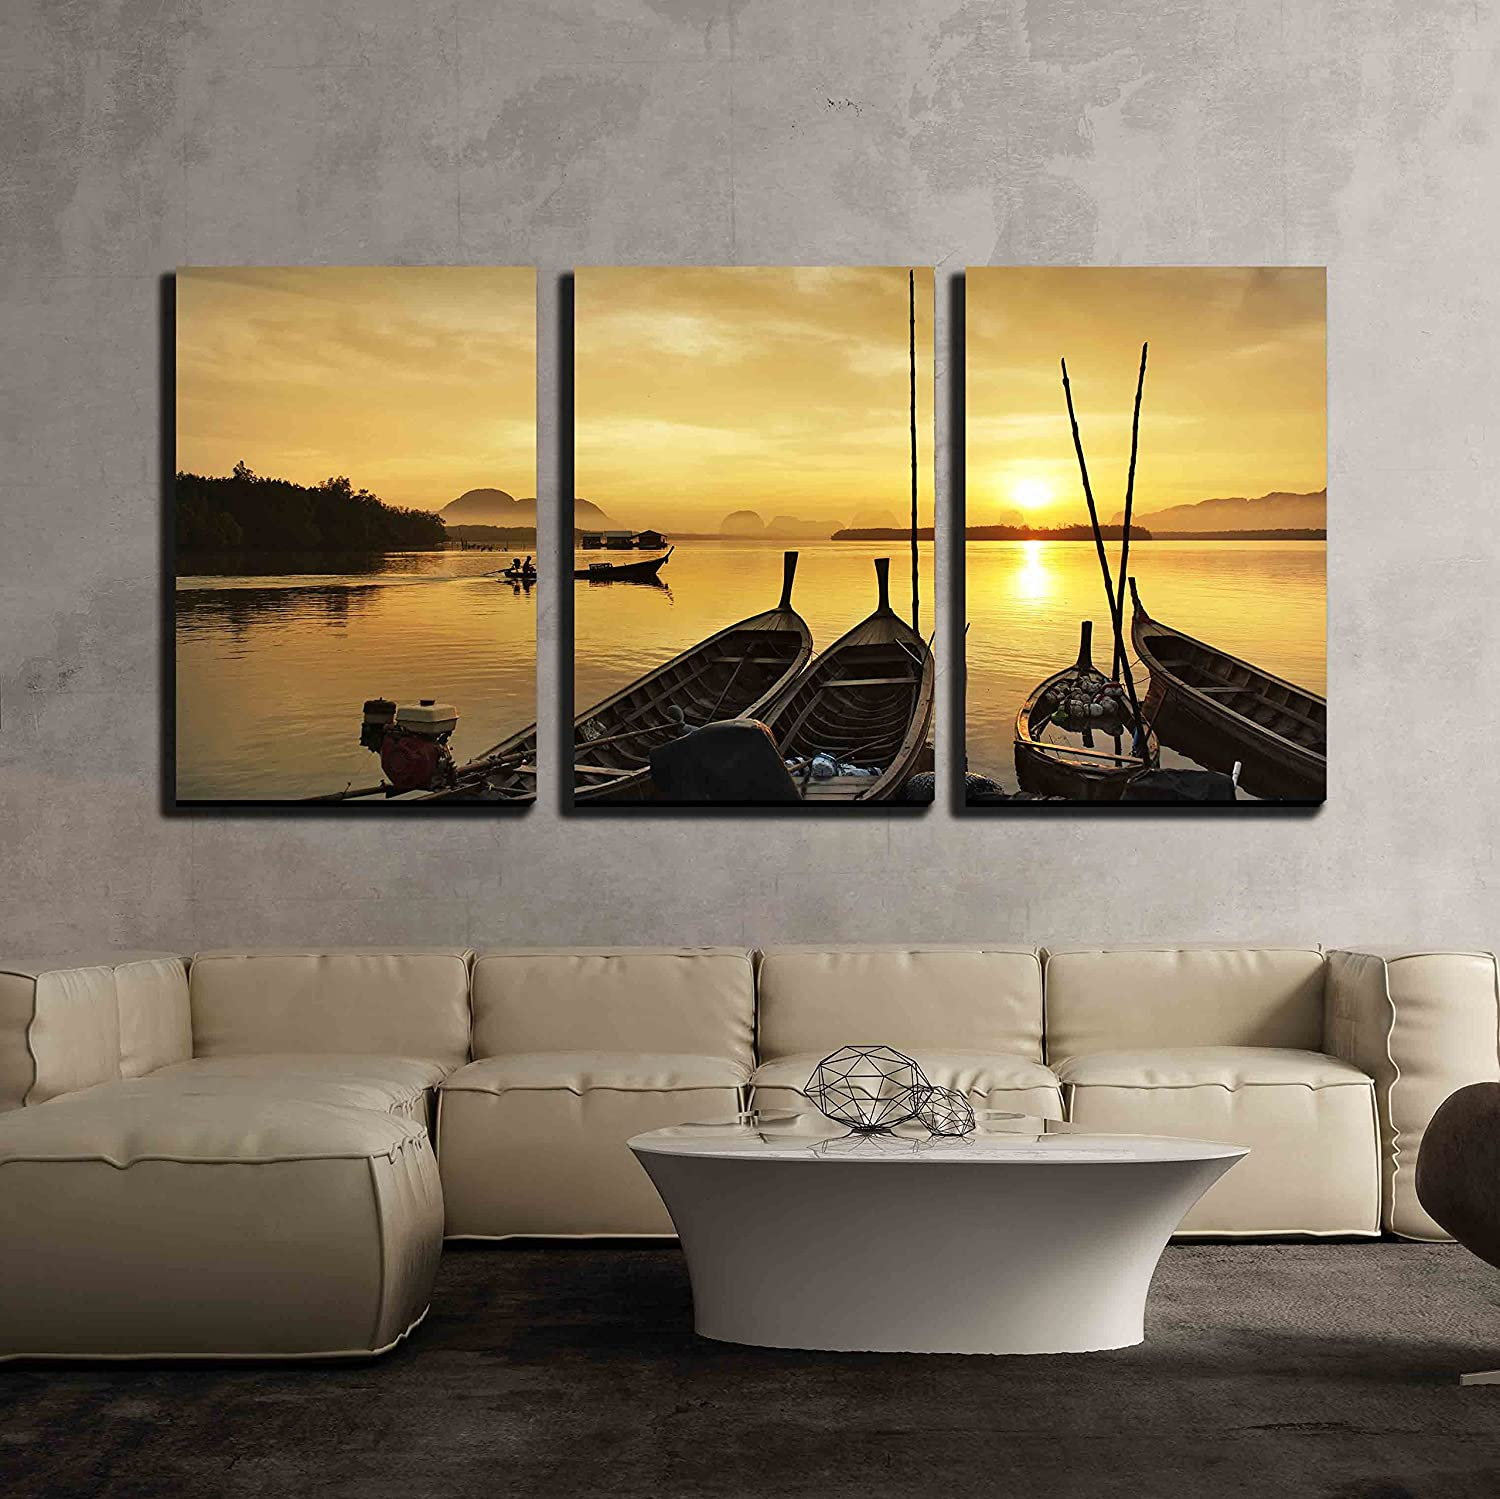 wall26 3 Piece Canvas Wall Art Fisherman Paddle Boat in Sunrise